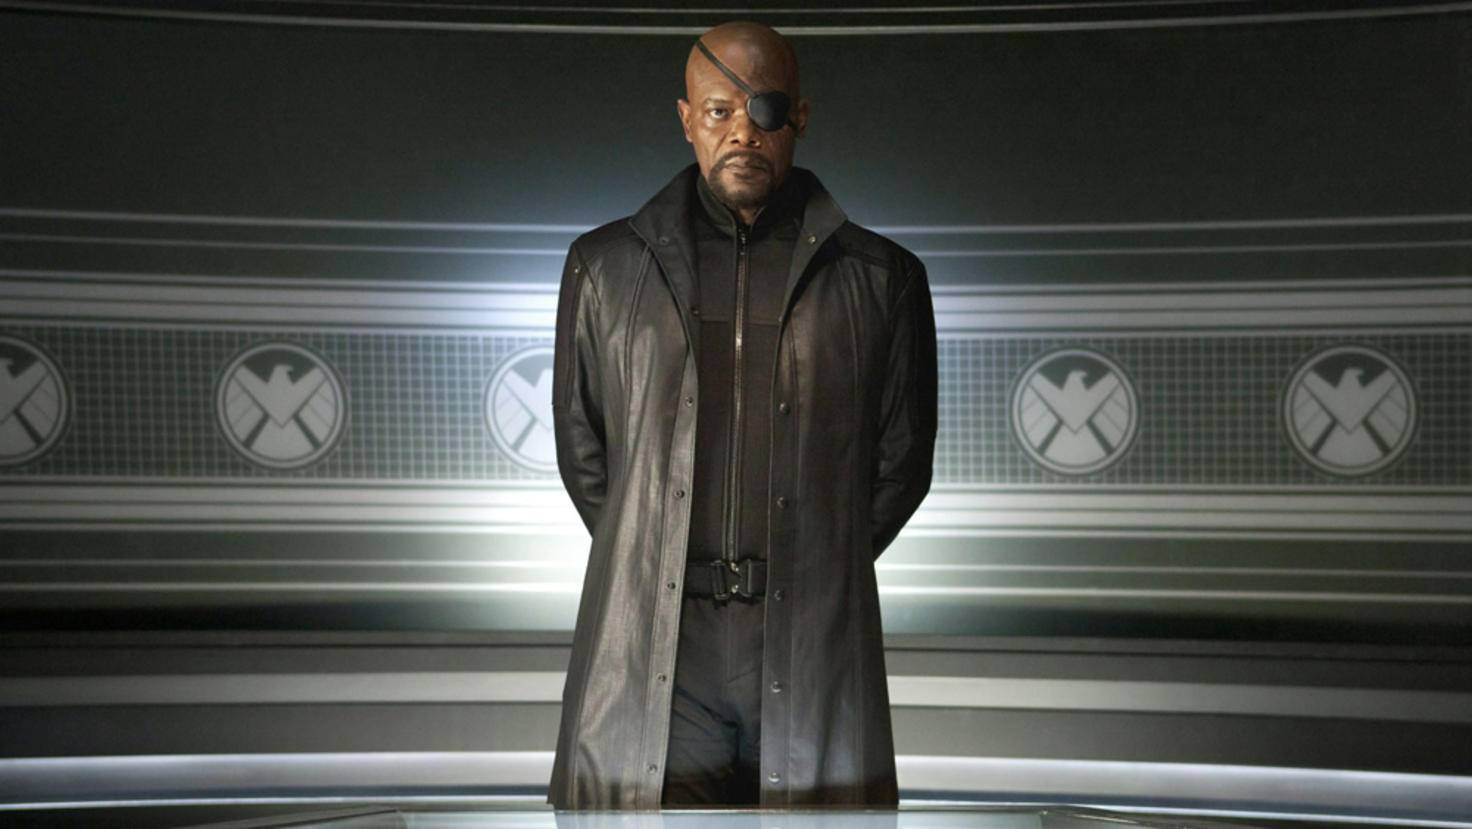 Samuel L. Jackson-picture alliance-Everett Collection-92838048